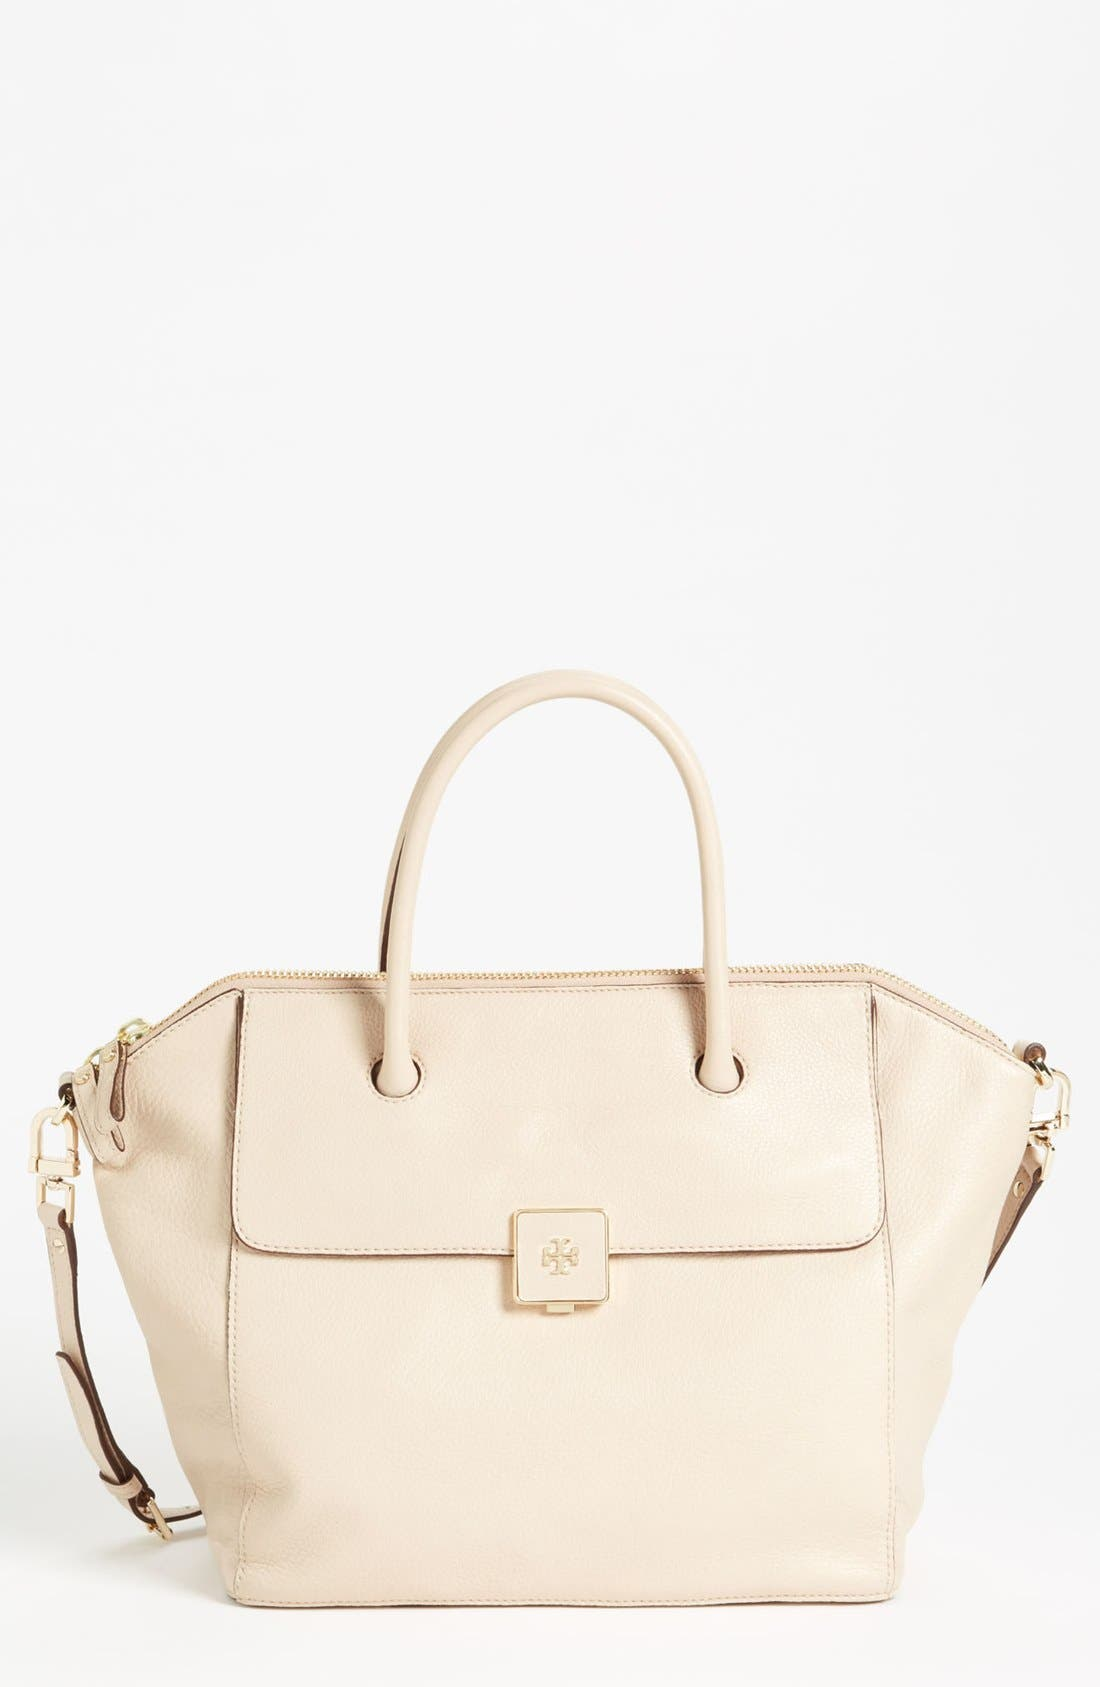 Main Image - Tory Burch 'Clara - Large' Leather Satchel